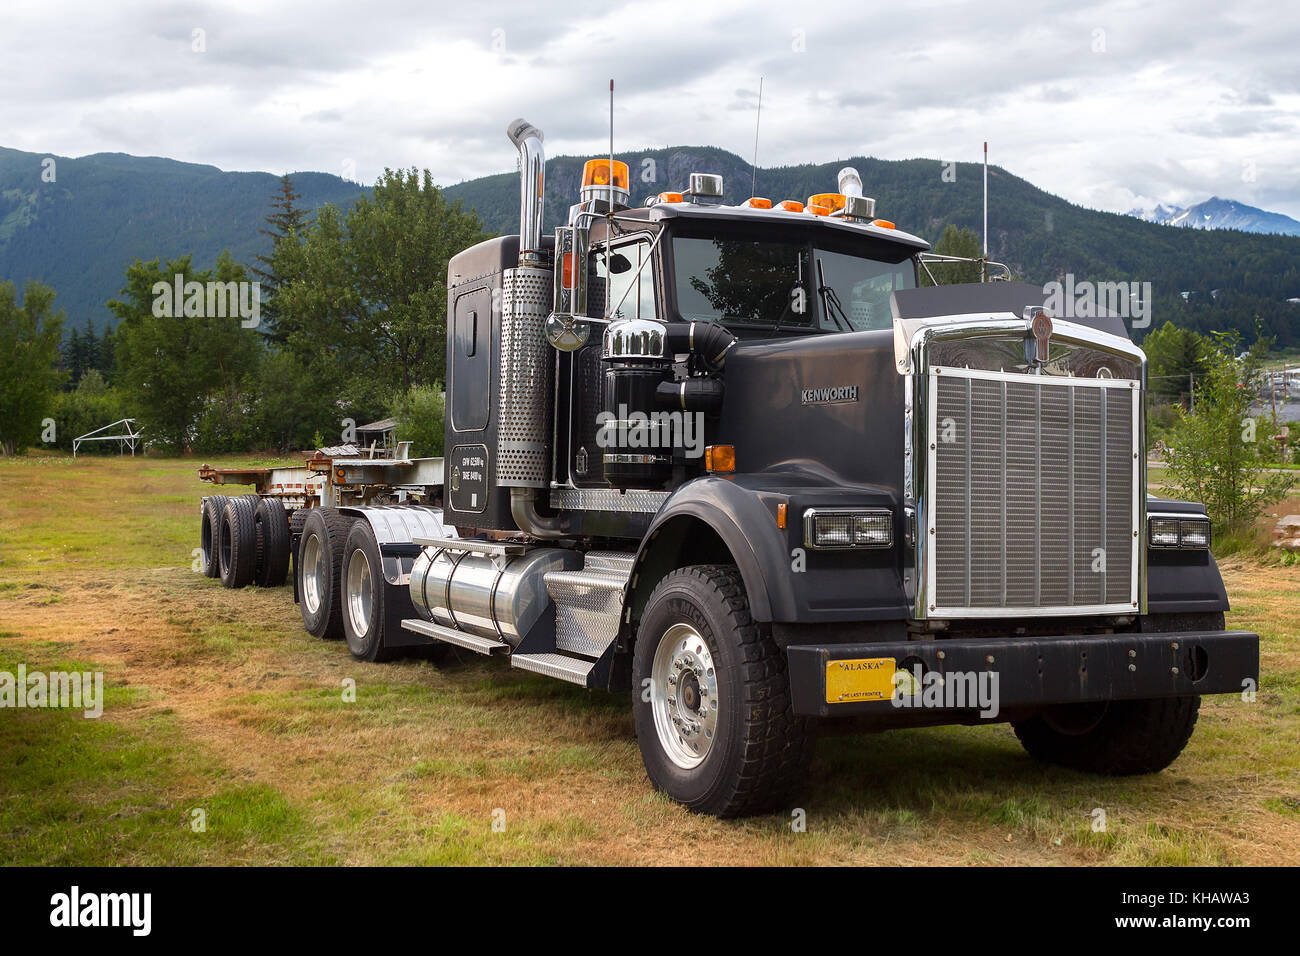 Haines, Alaska, USA - July 29th, 2017: A Kenworth truck parked on the field of Fort Sewart in Haines. - Stock Image